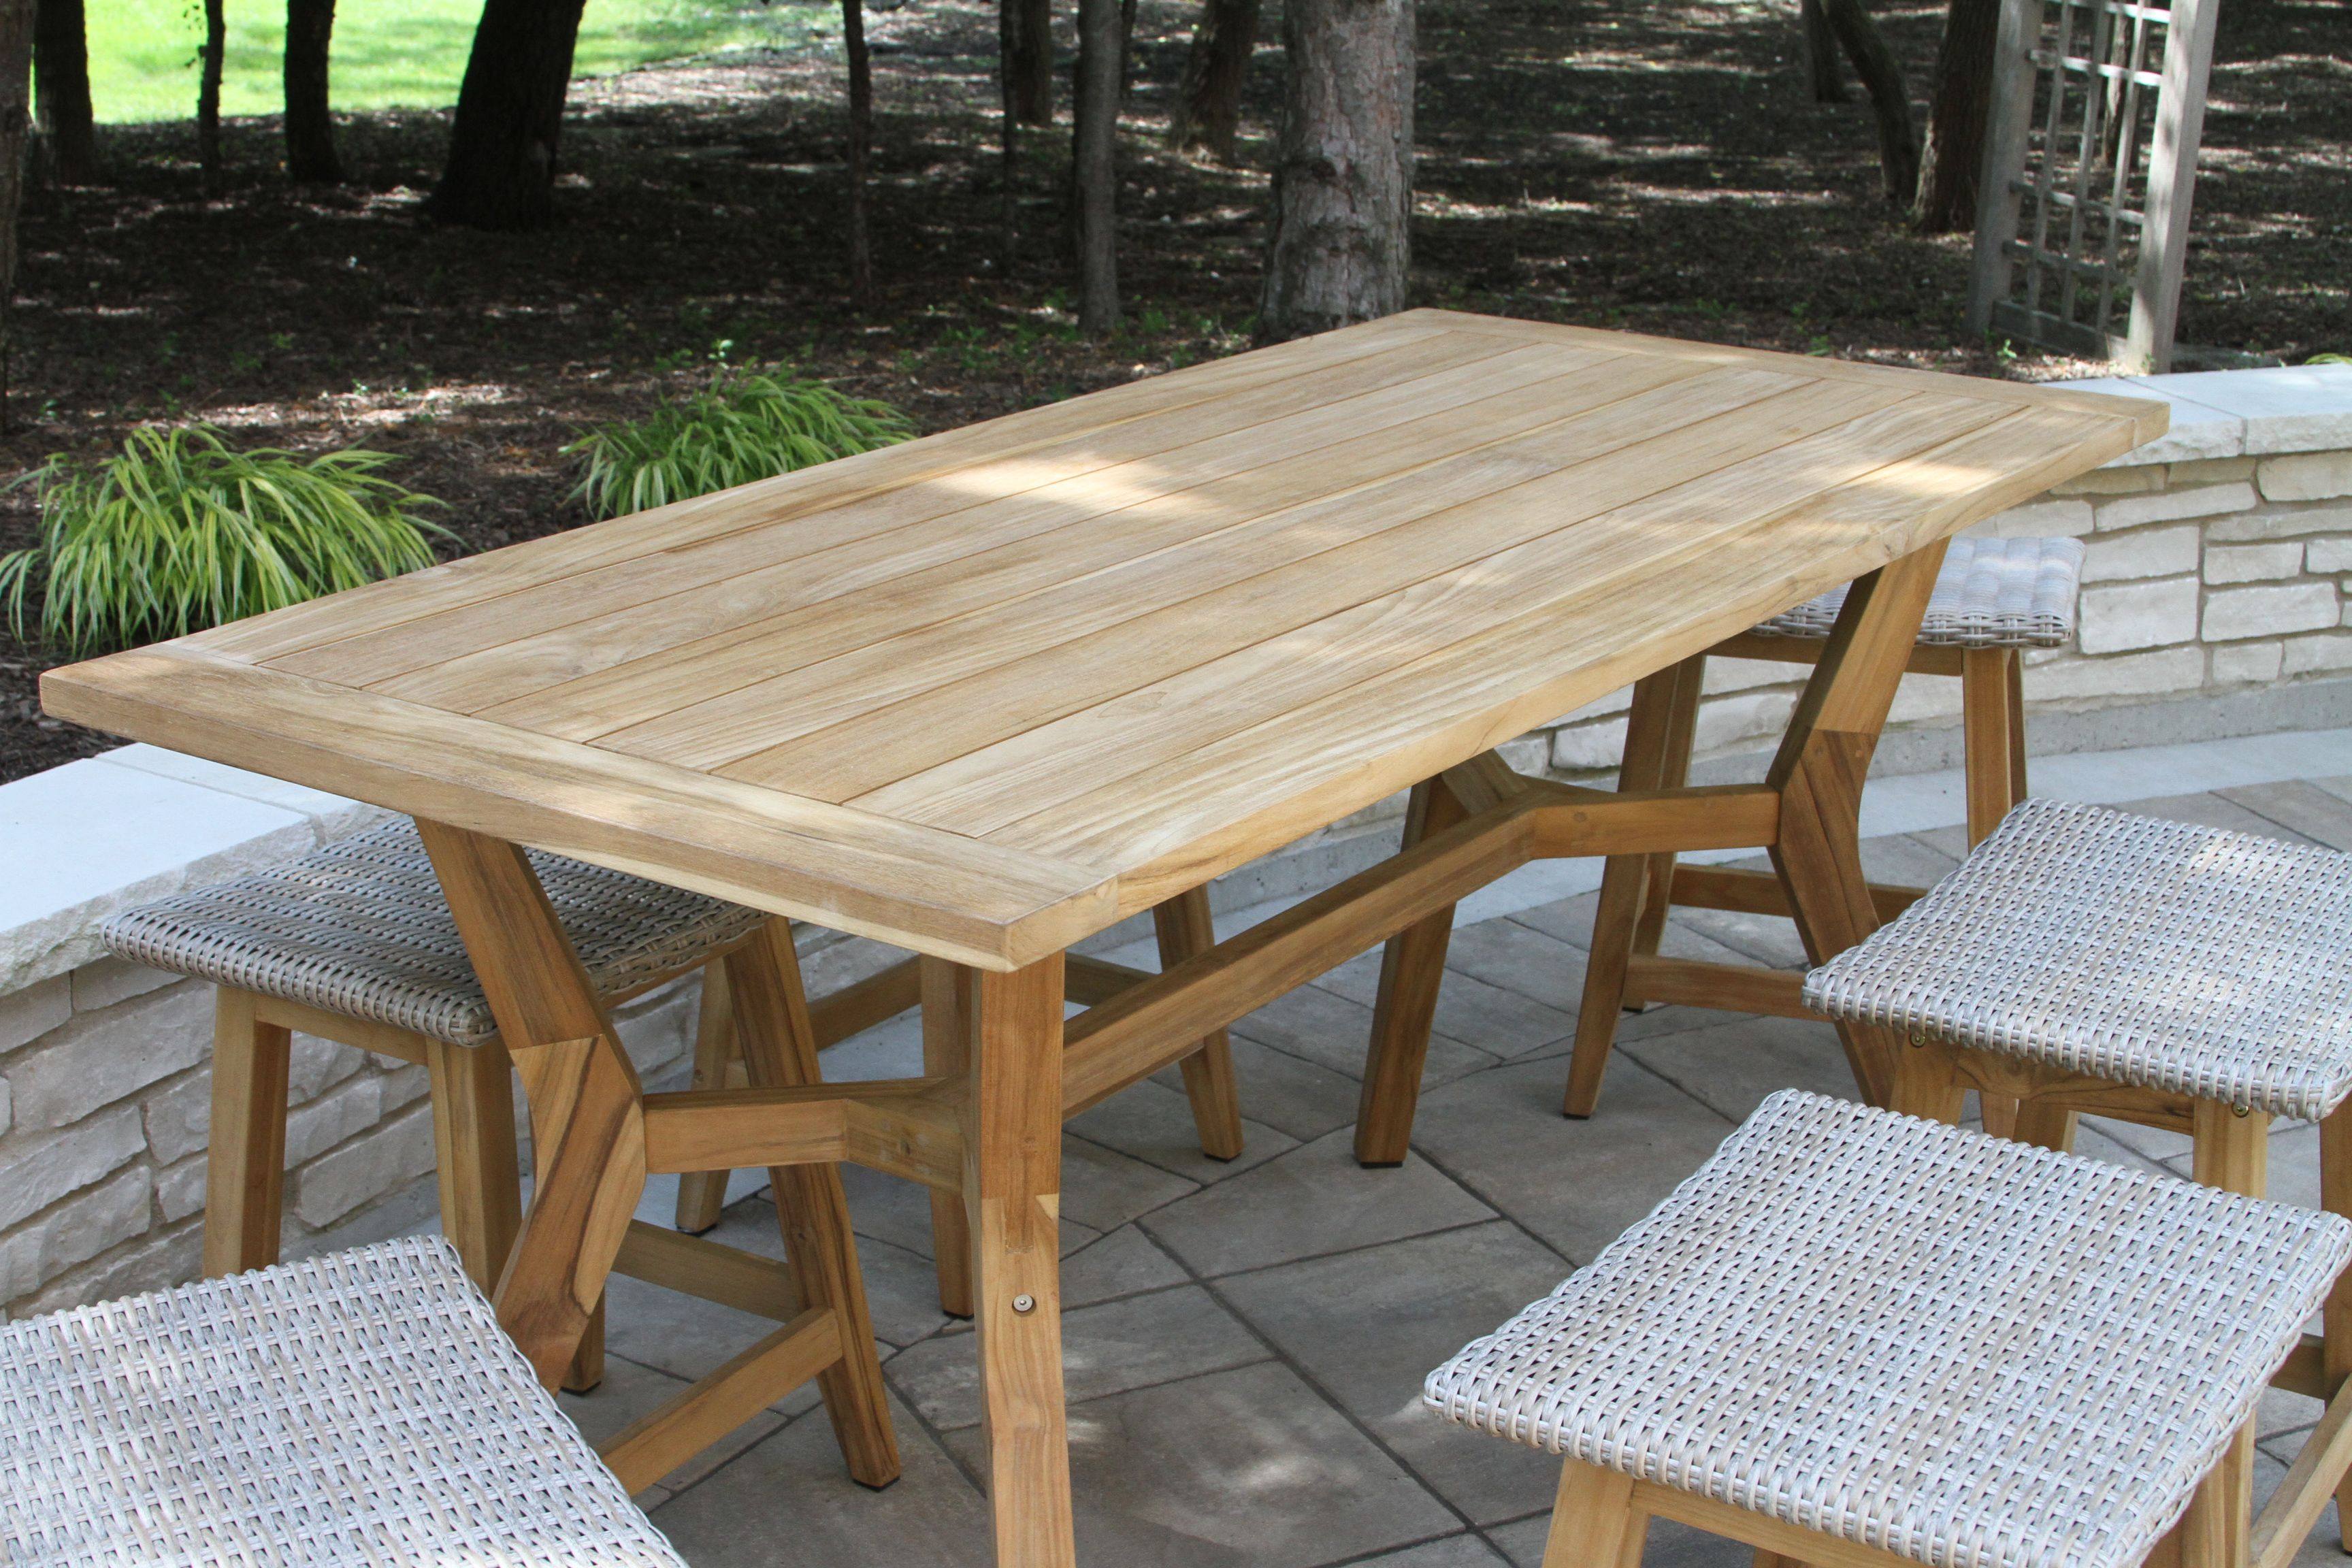 Nautical Teak Counter Height Table All Teak Outdoor Wood Furniture Tile Patio Table Outdoor Tables